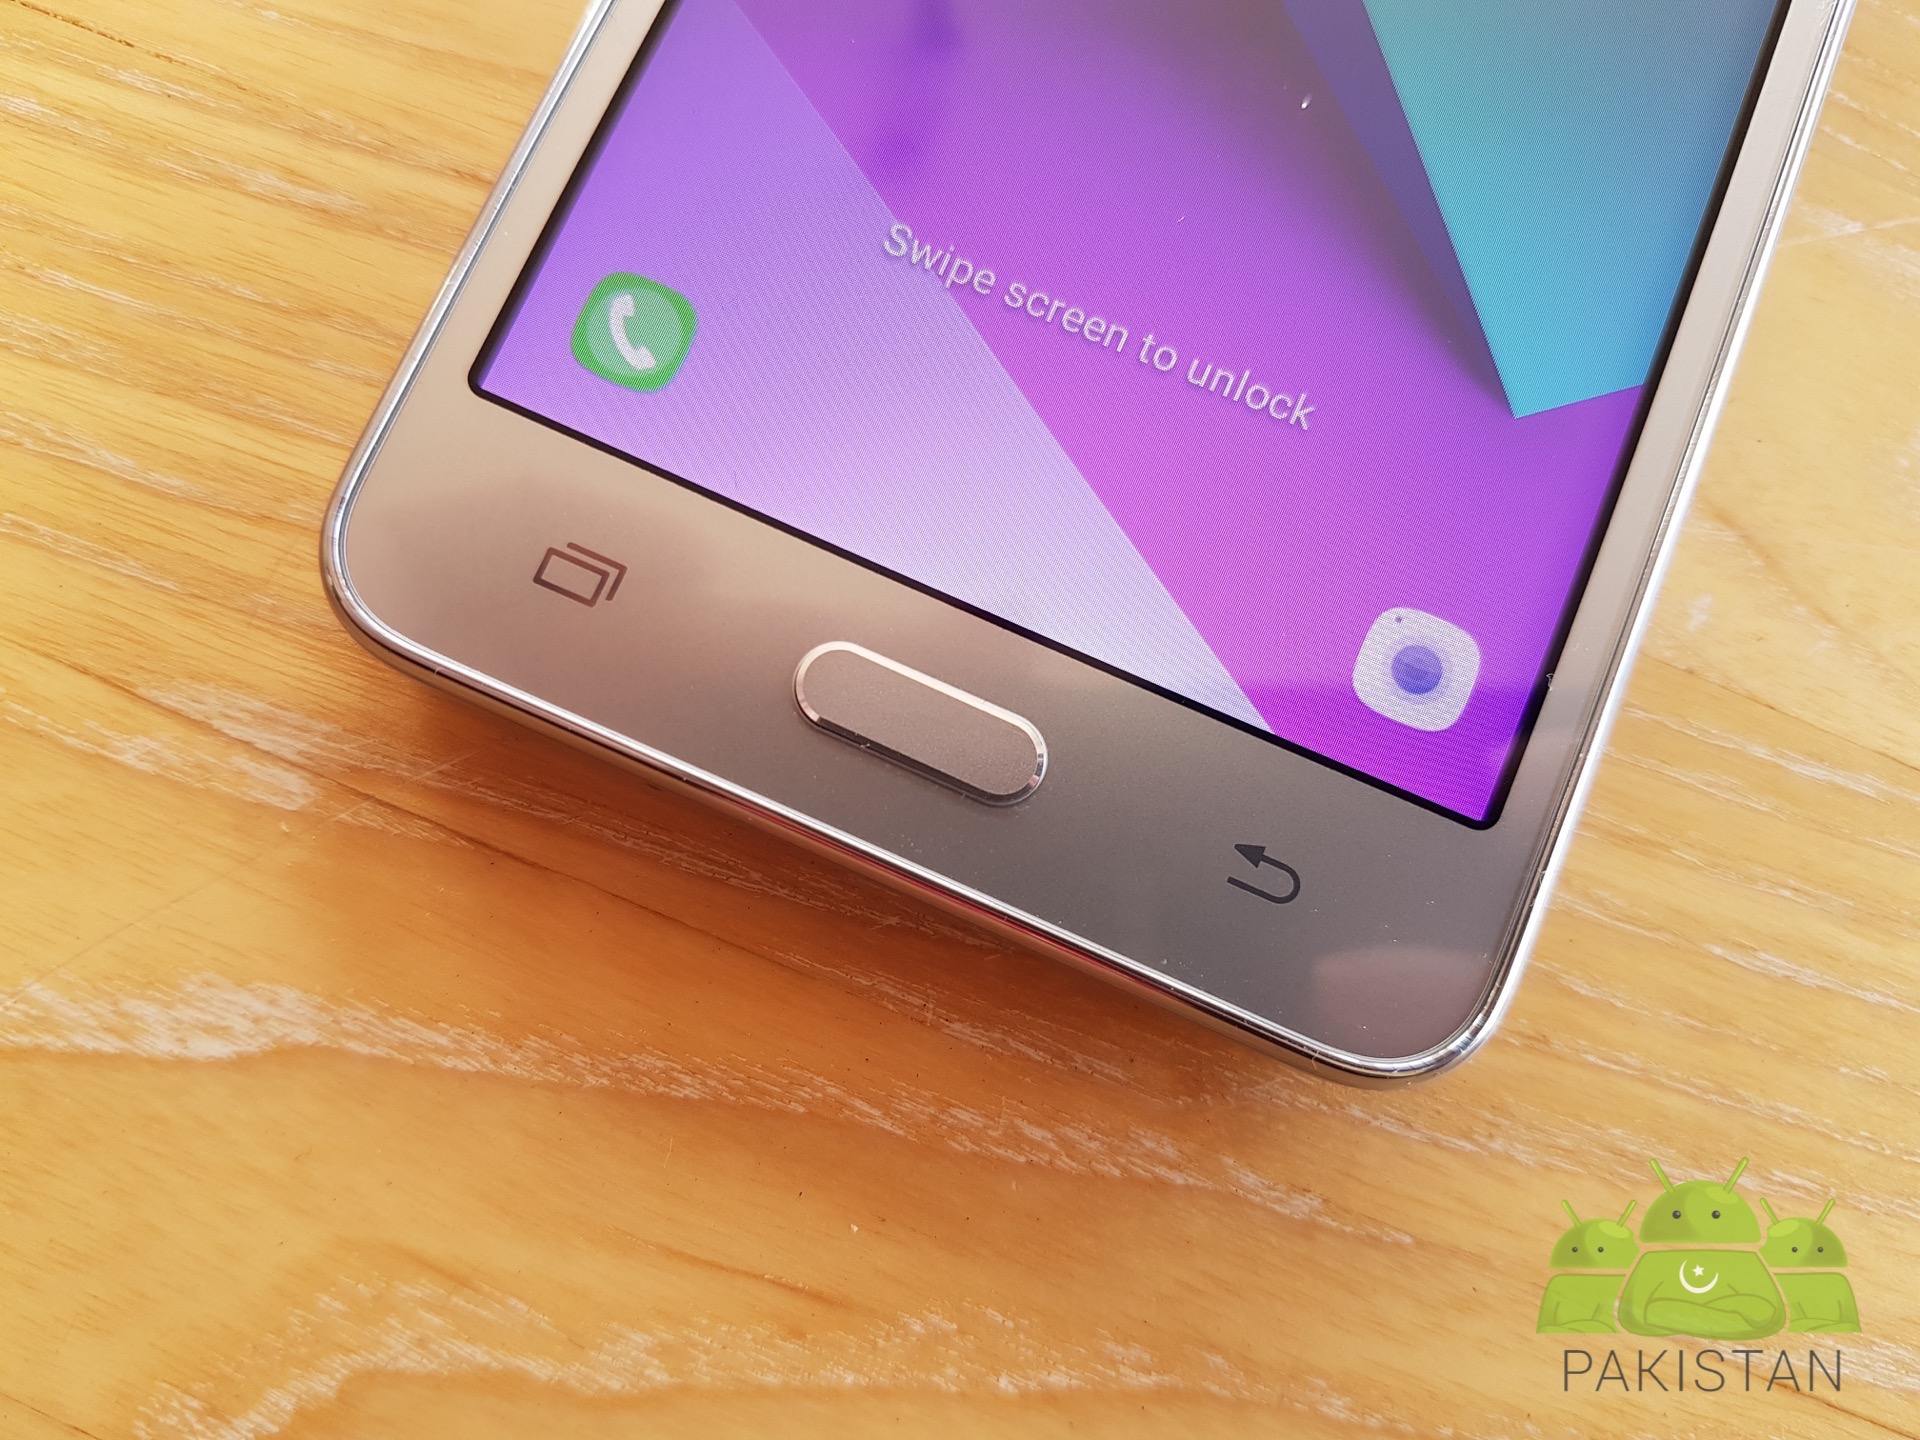 Samsung Galaxy Grand Prime Plus 8 Android Pakistan